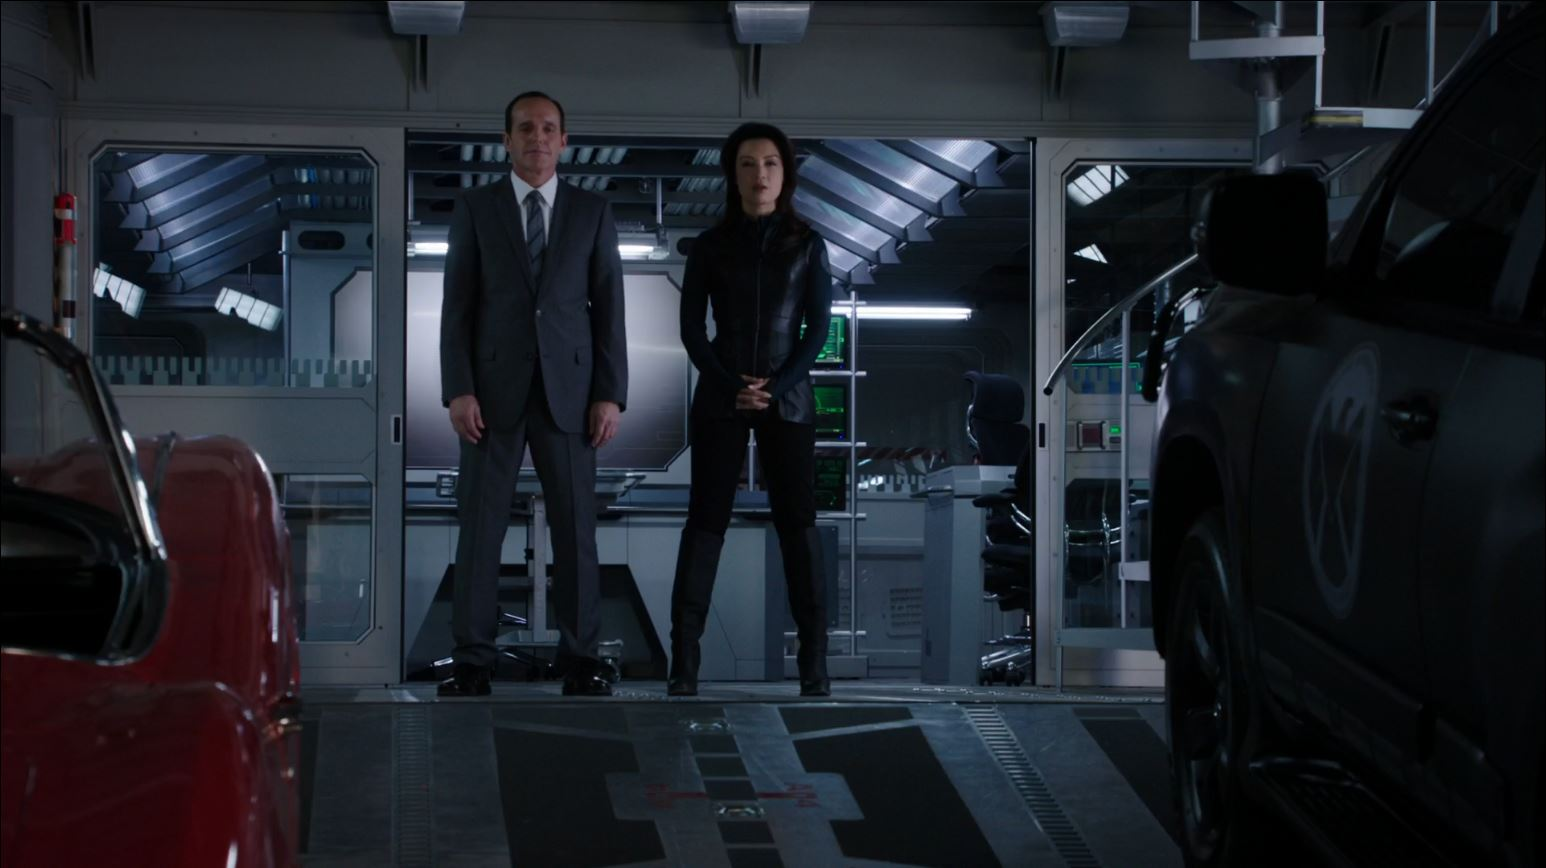 Agents of SHIELD - Coulson and May waiting for Mike Peterson - Agents of S.H.I.E.L.D S1Ep10 'The Bridge' Review